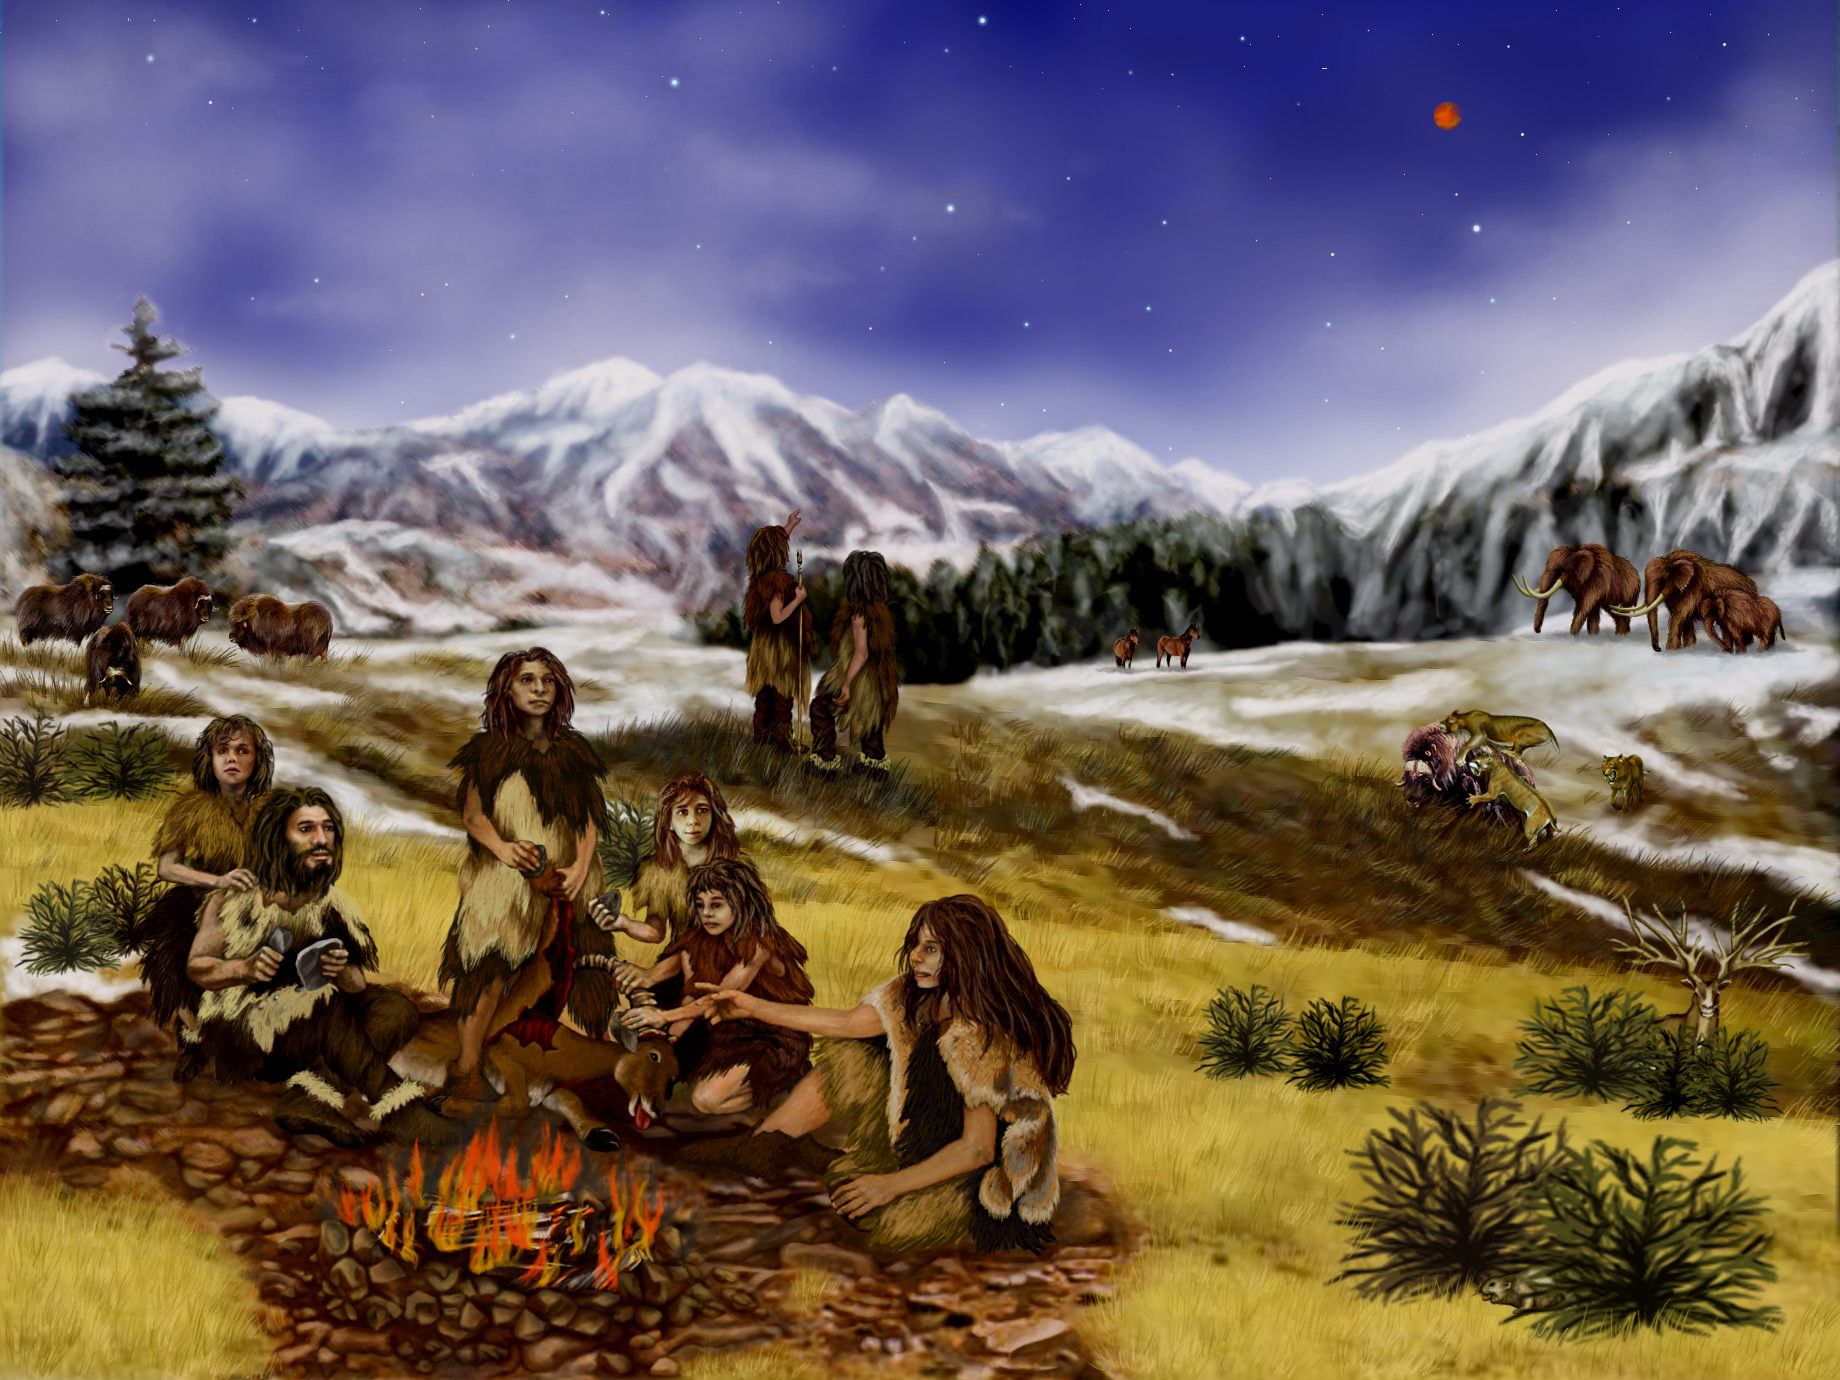 an overview of the neanderthals Immediately download the neanderthal summary, chapter-by-chapter analysis, book notes, essays, quotes, character descriptions, lesson plans, and more - everything you need for studying or teaching neanderthal.